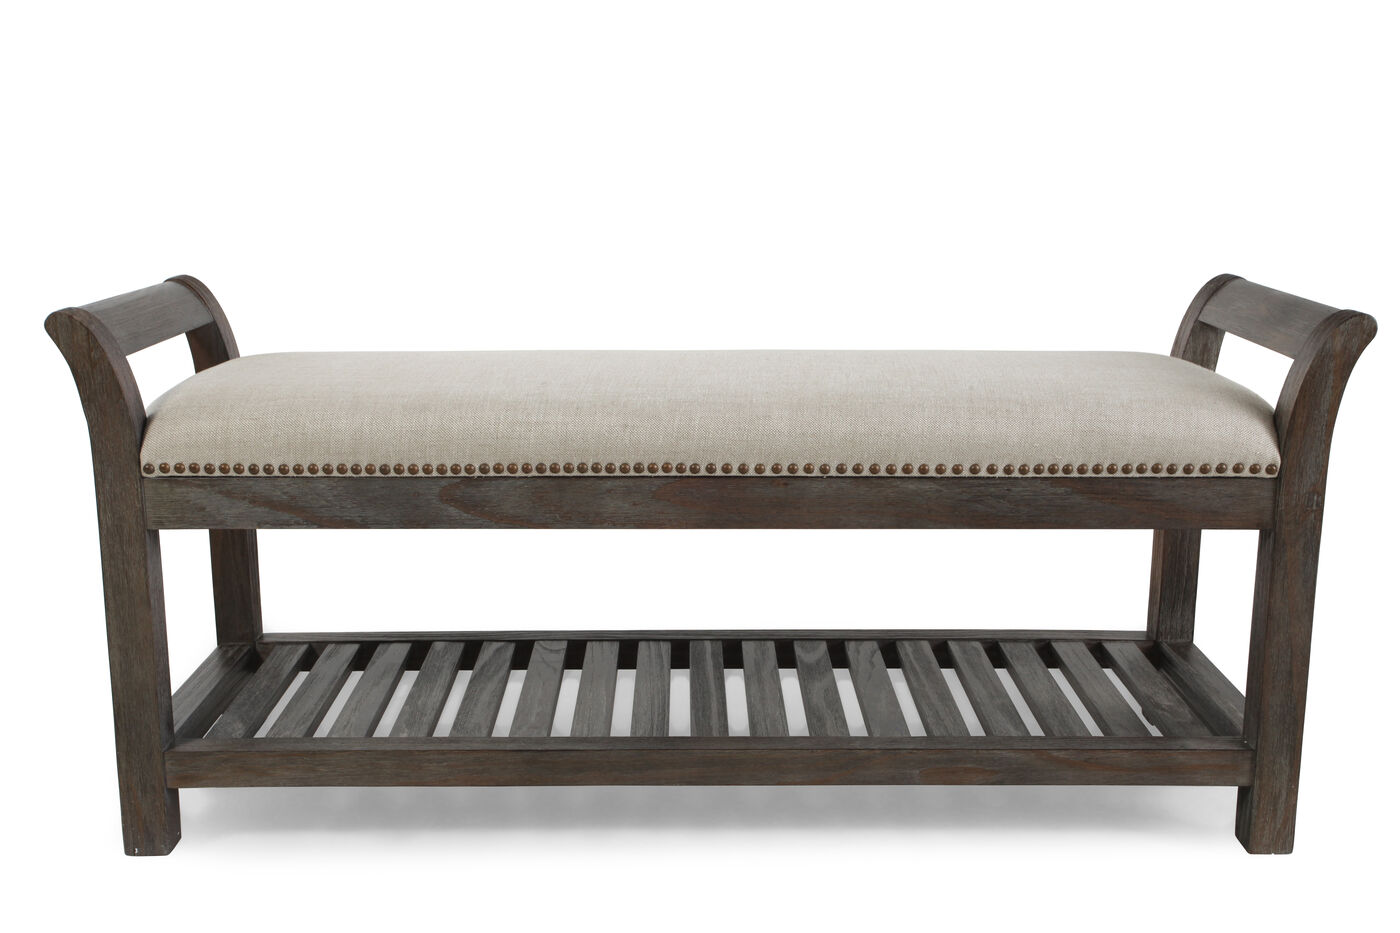 A.R.T. Furniture St. Germain Bed Bench